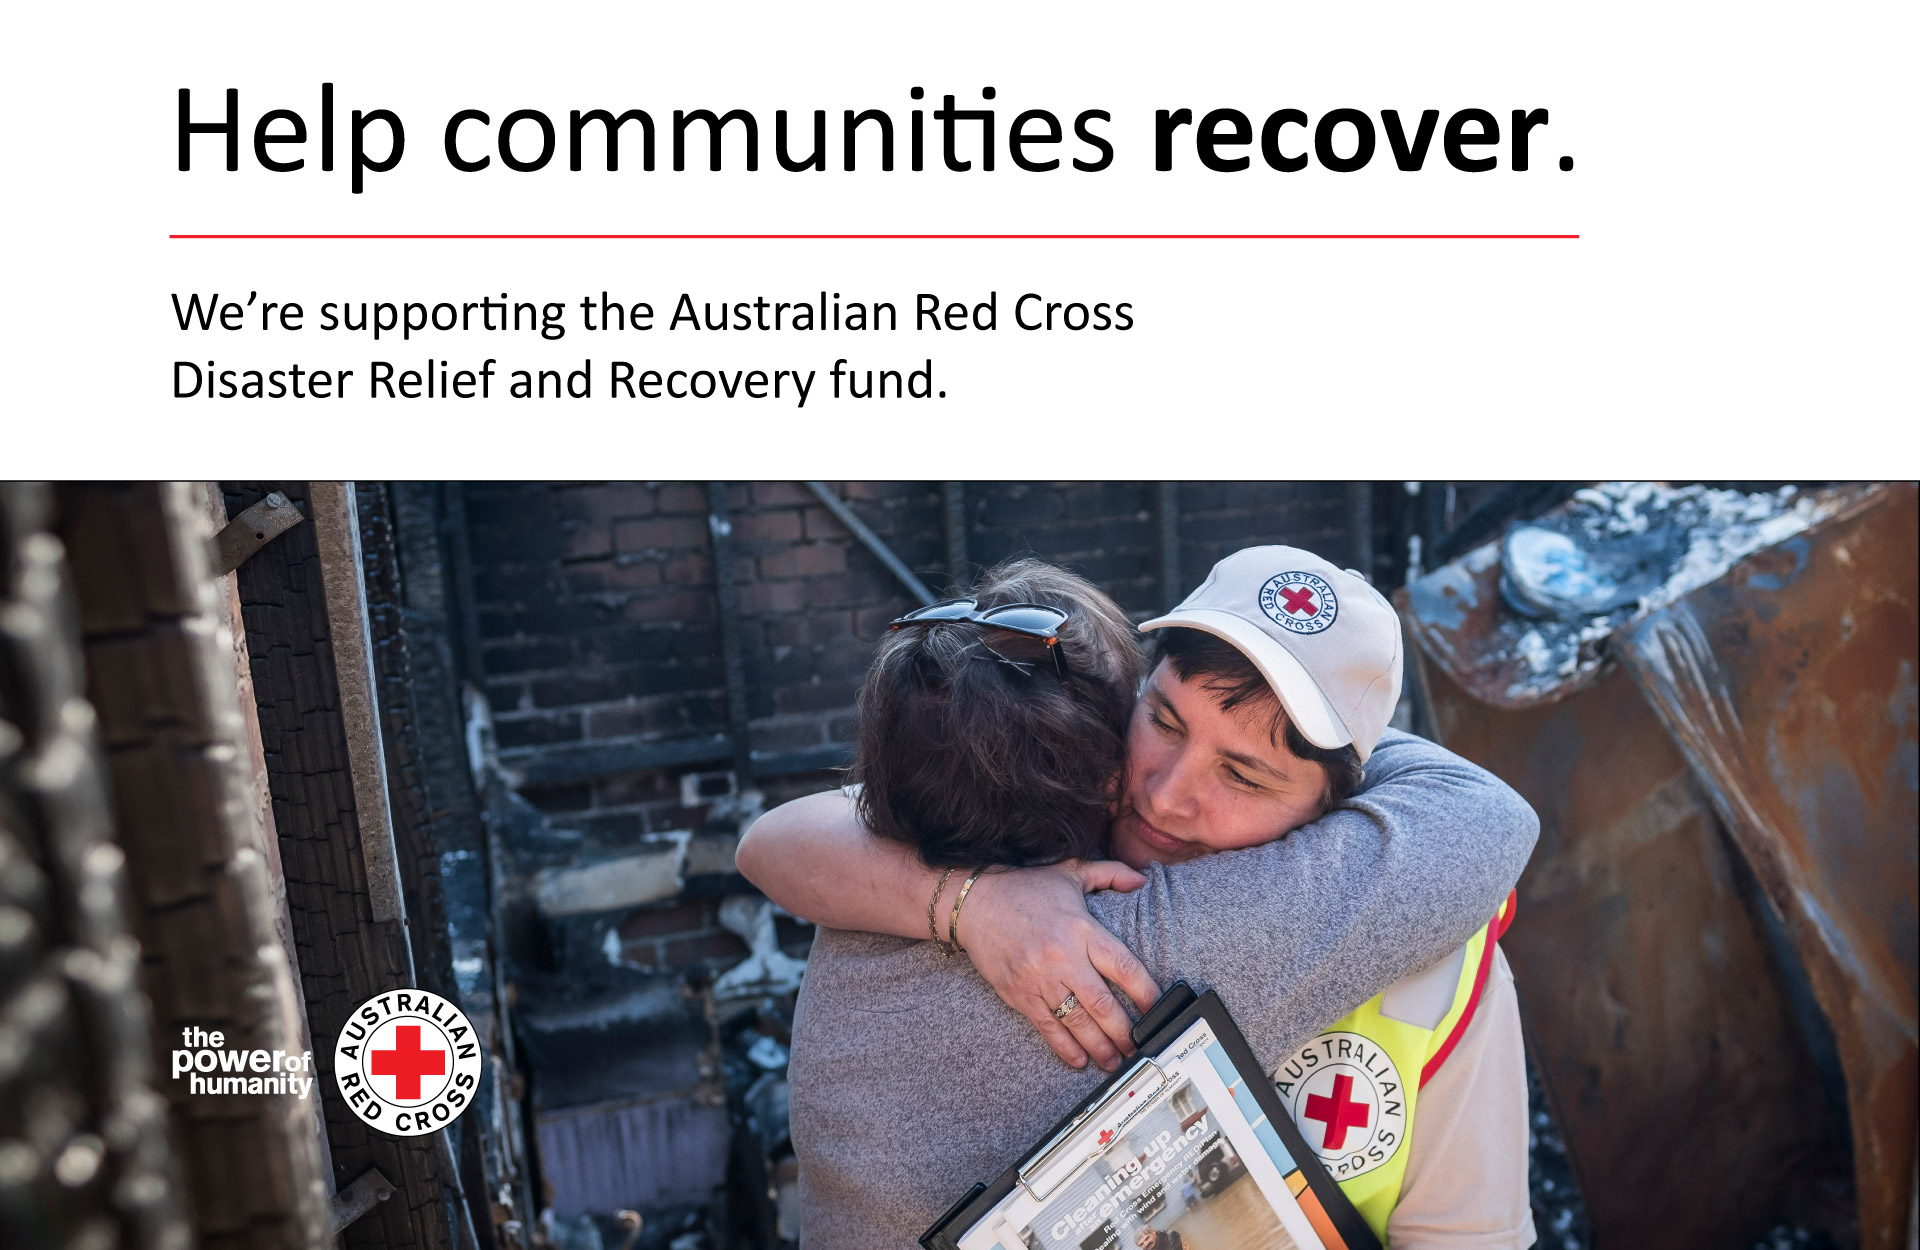 Australian Red Cross Disaster Relief and Recovery fund